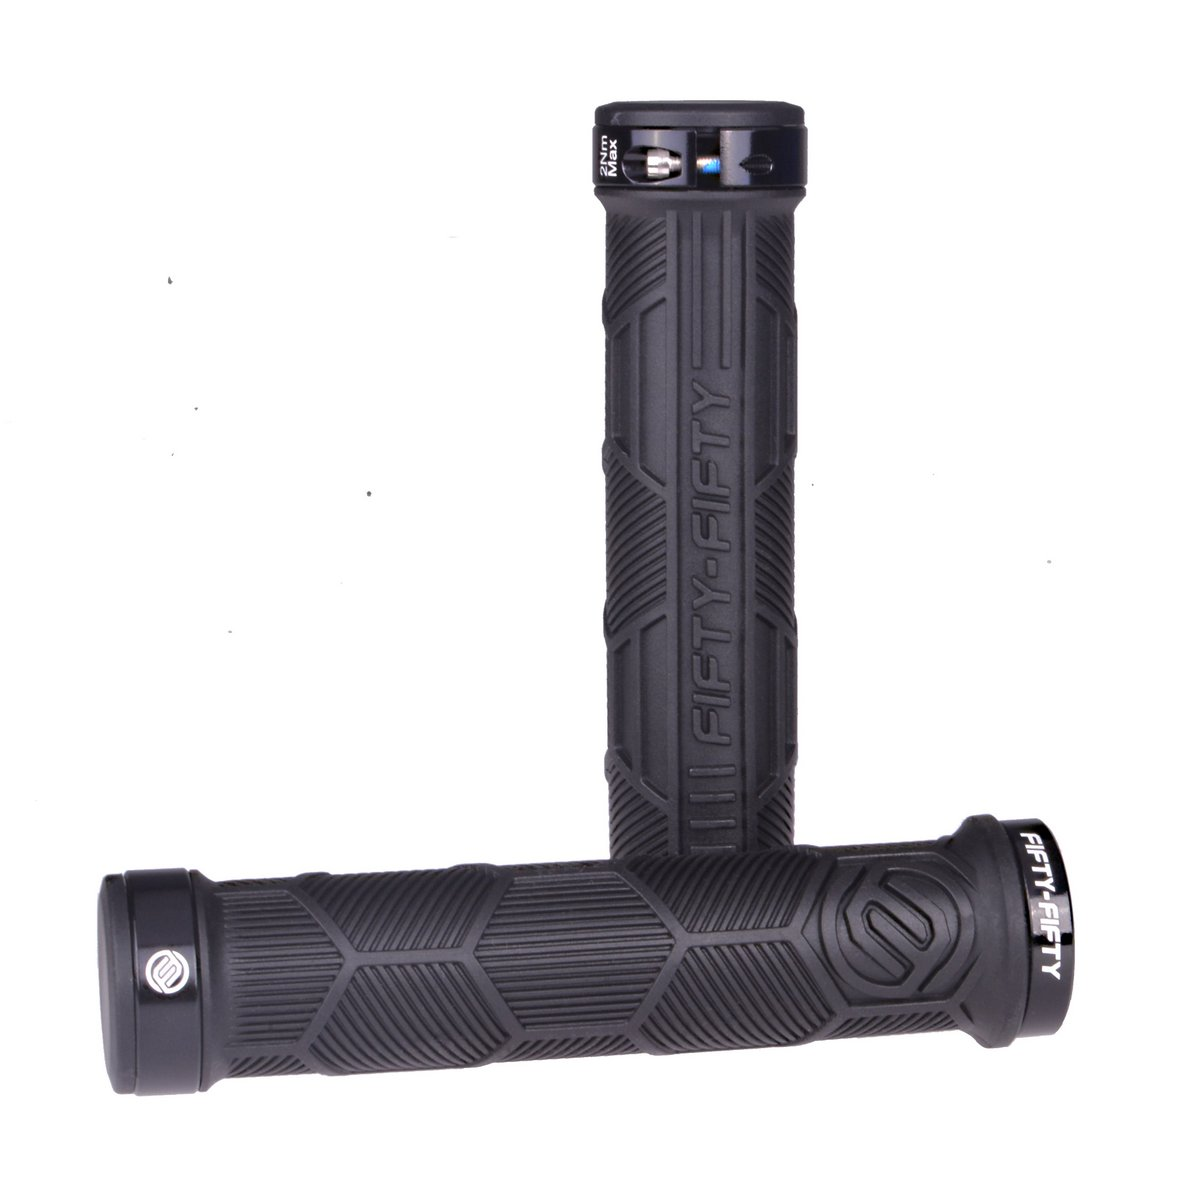 FIFTY-FIFTY <font><b>Bicycle</b></font> Grips MTB Cycling BMX Road Mountain Bike Handles Anti-Skid Bike Handlebar Grip <font><b>Bicycle</b></font> <font><b>Parts</b></font> image